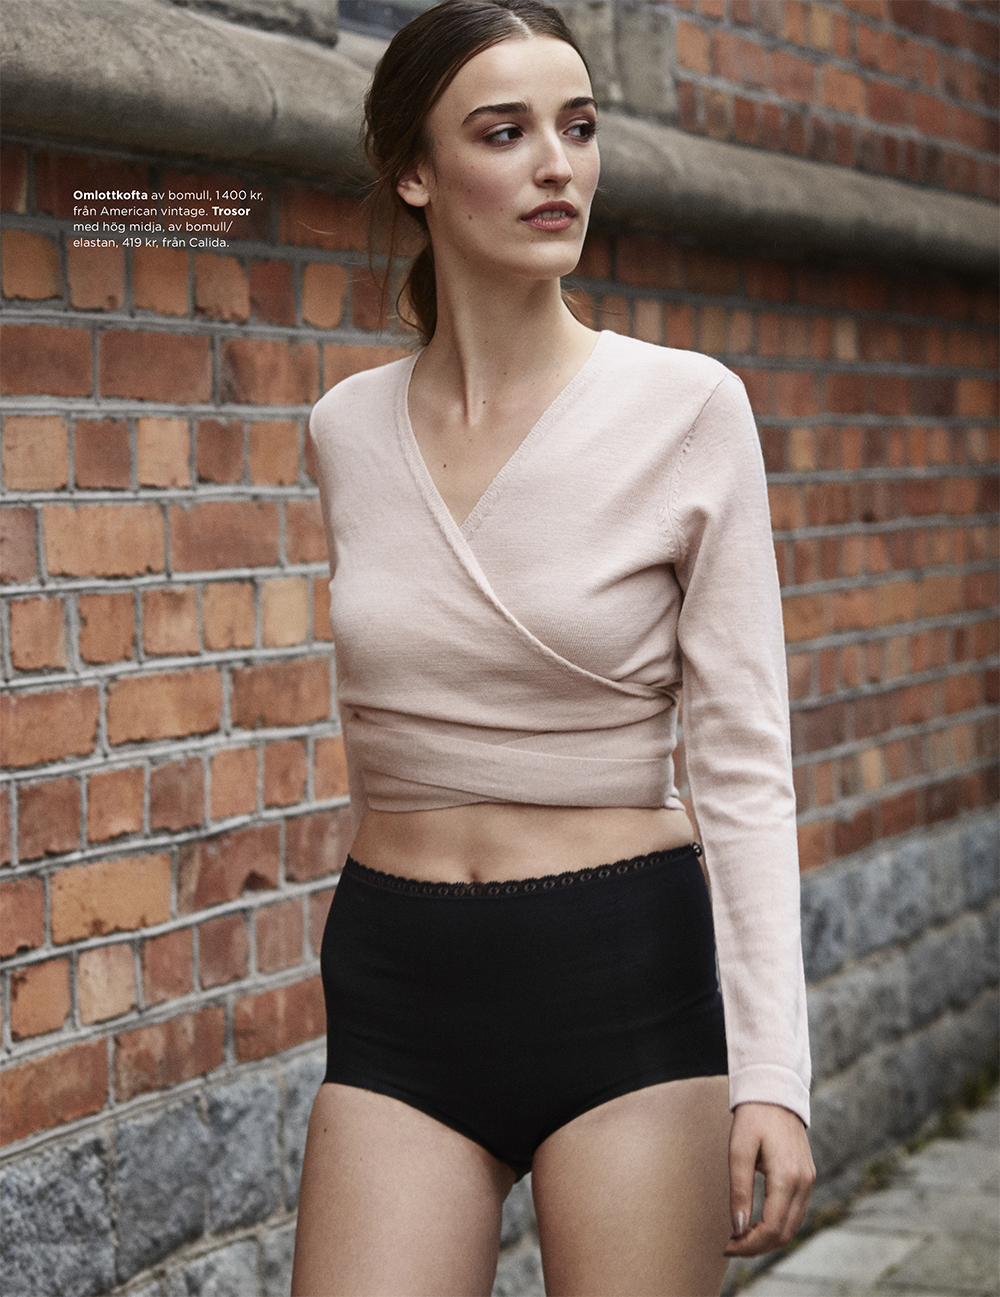 stylist sania claus demina editorial modejobb damernas varld mode 2015 mode lula o_5